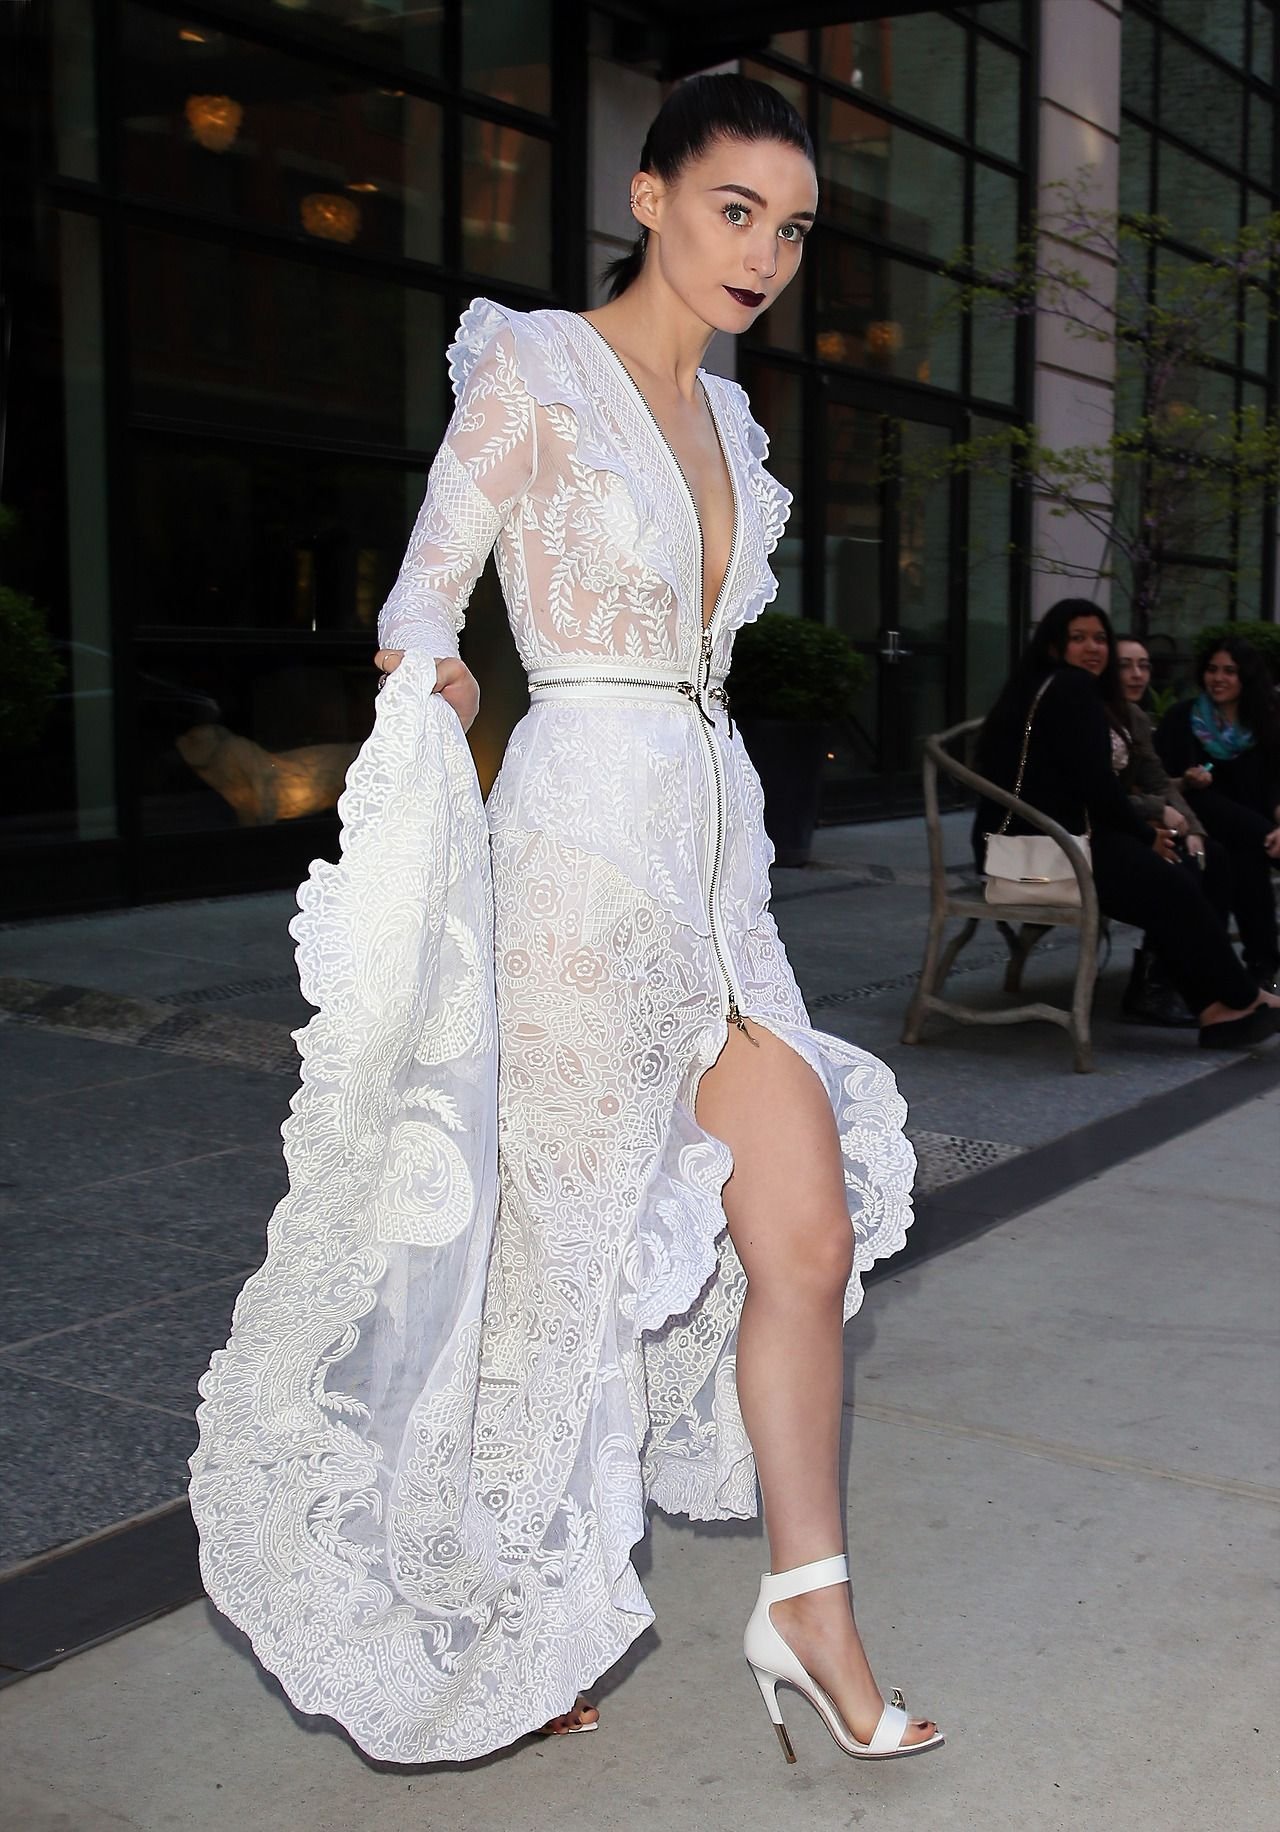 Rooney Mara in Givenchy at the #MetGala | Lace | Pinterest ...